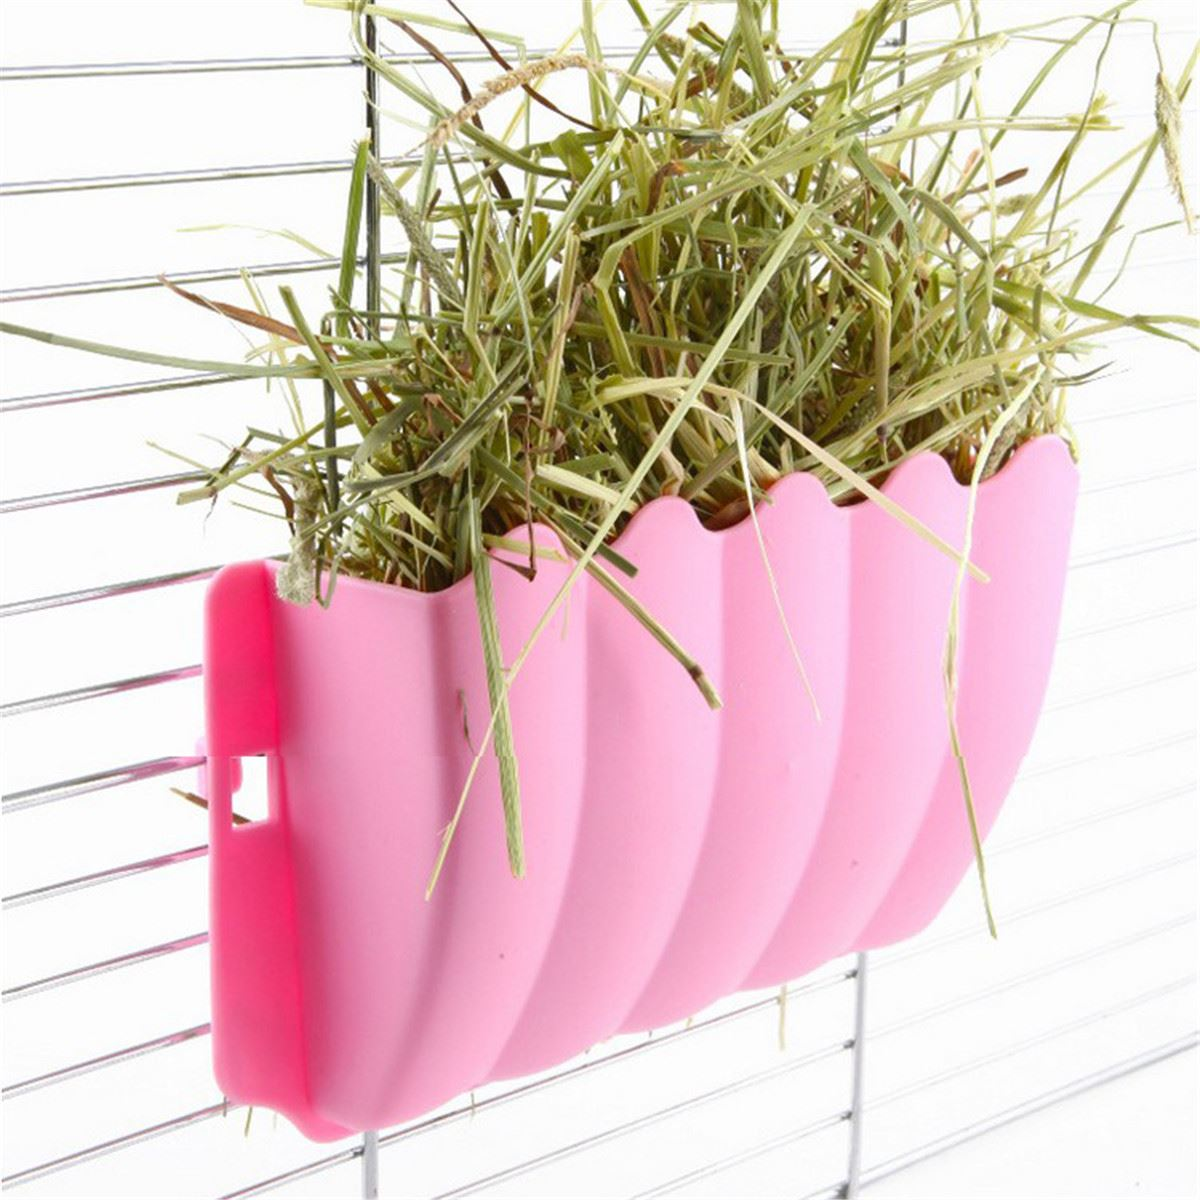 grass feeder nesting pet item rabbit bowl watering in plastic feeding garden from hanging pig supplies home rack small frame pigs hay holder cat guinea